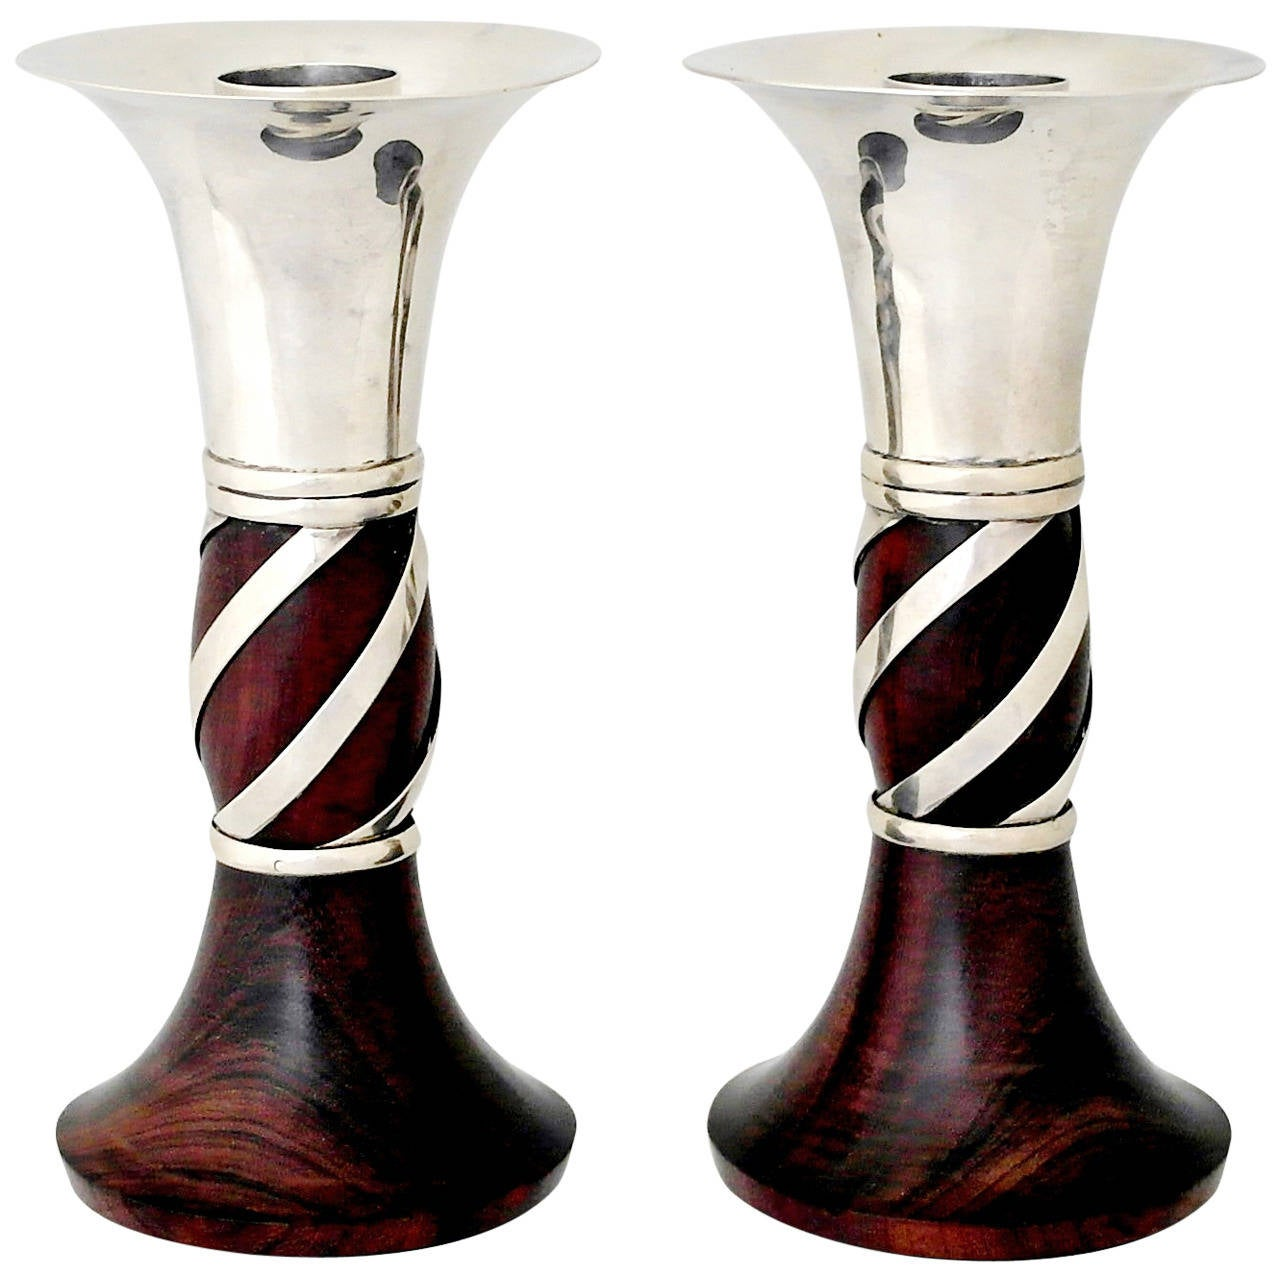 William Spratling Sterling Silver and Rosewood Candlesticks, pair 1950